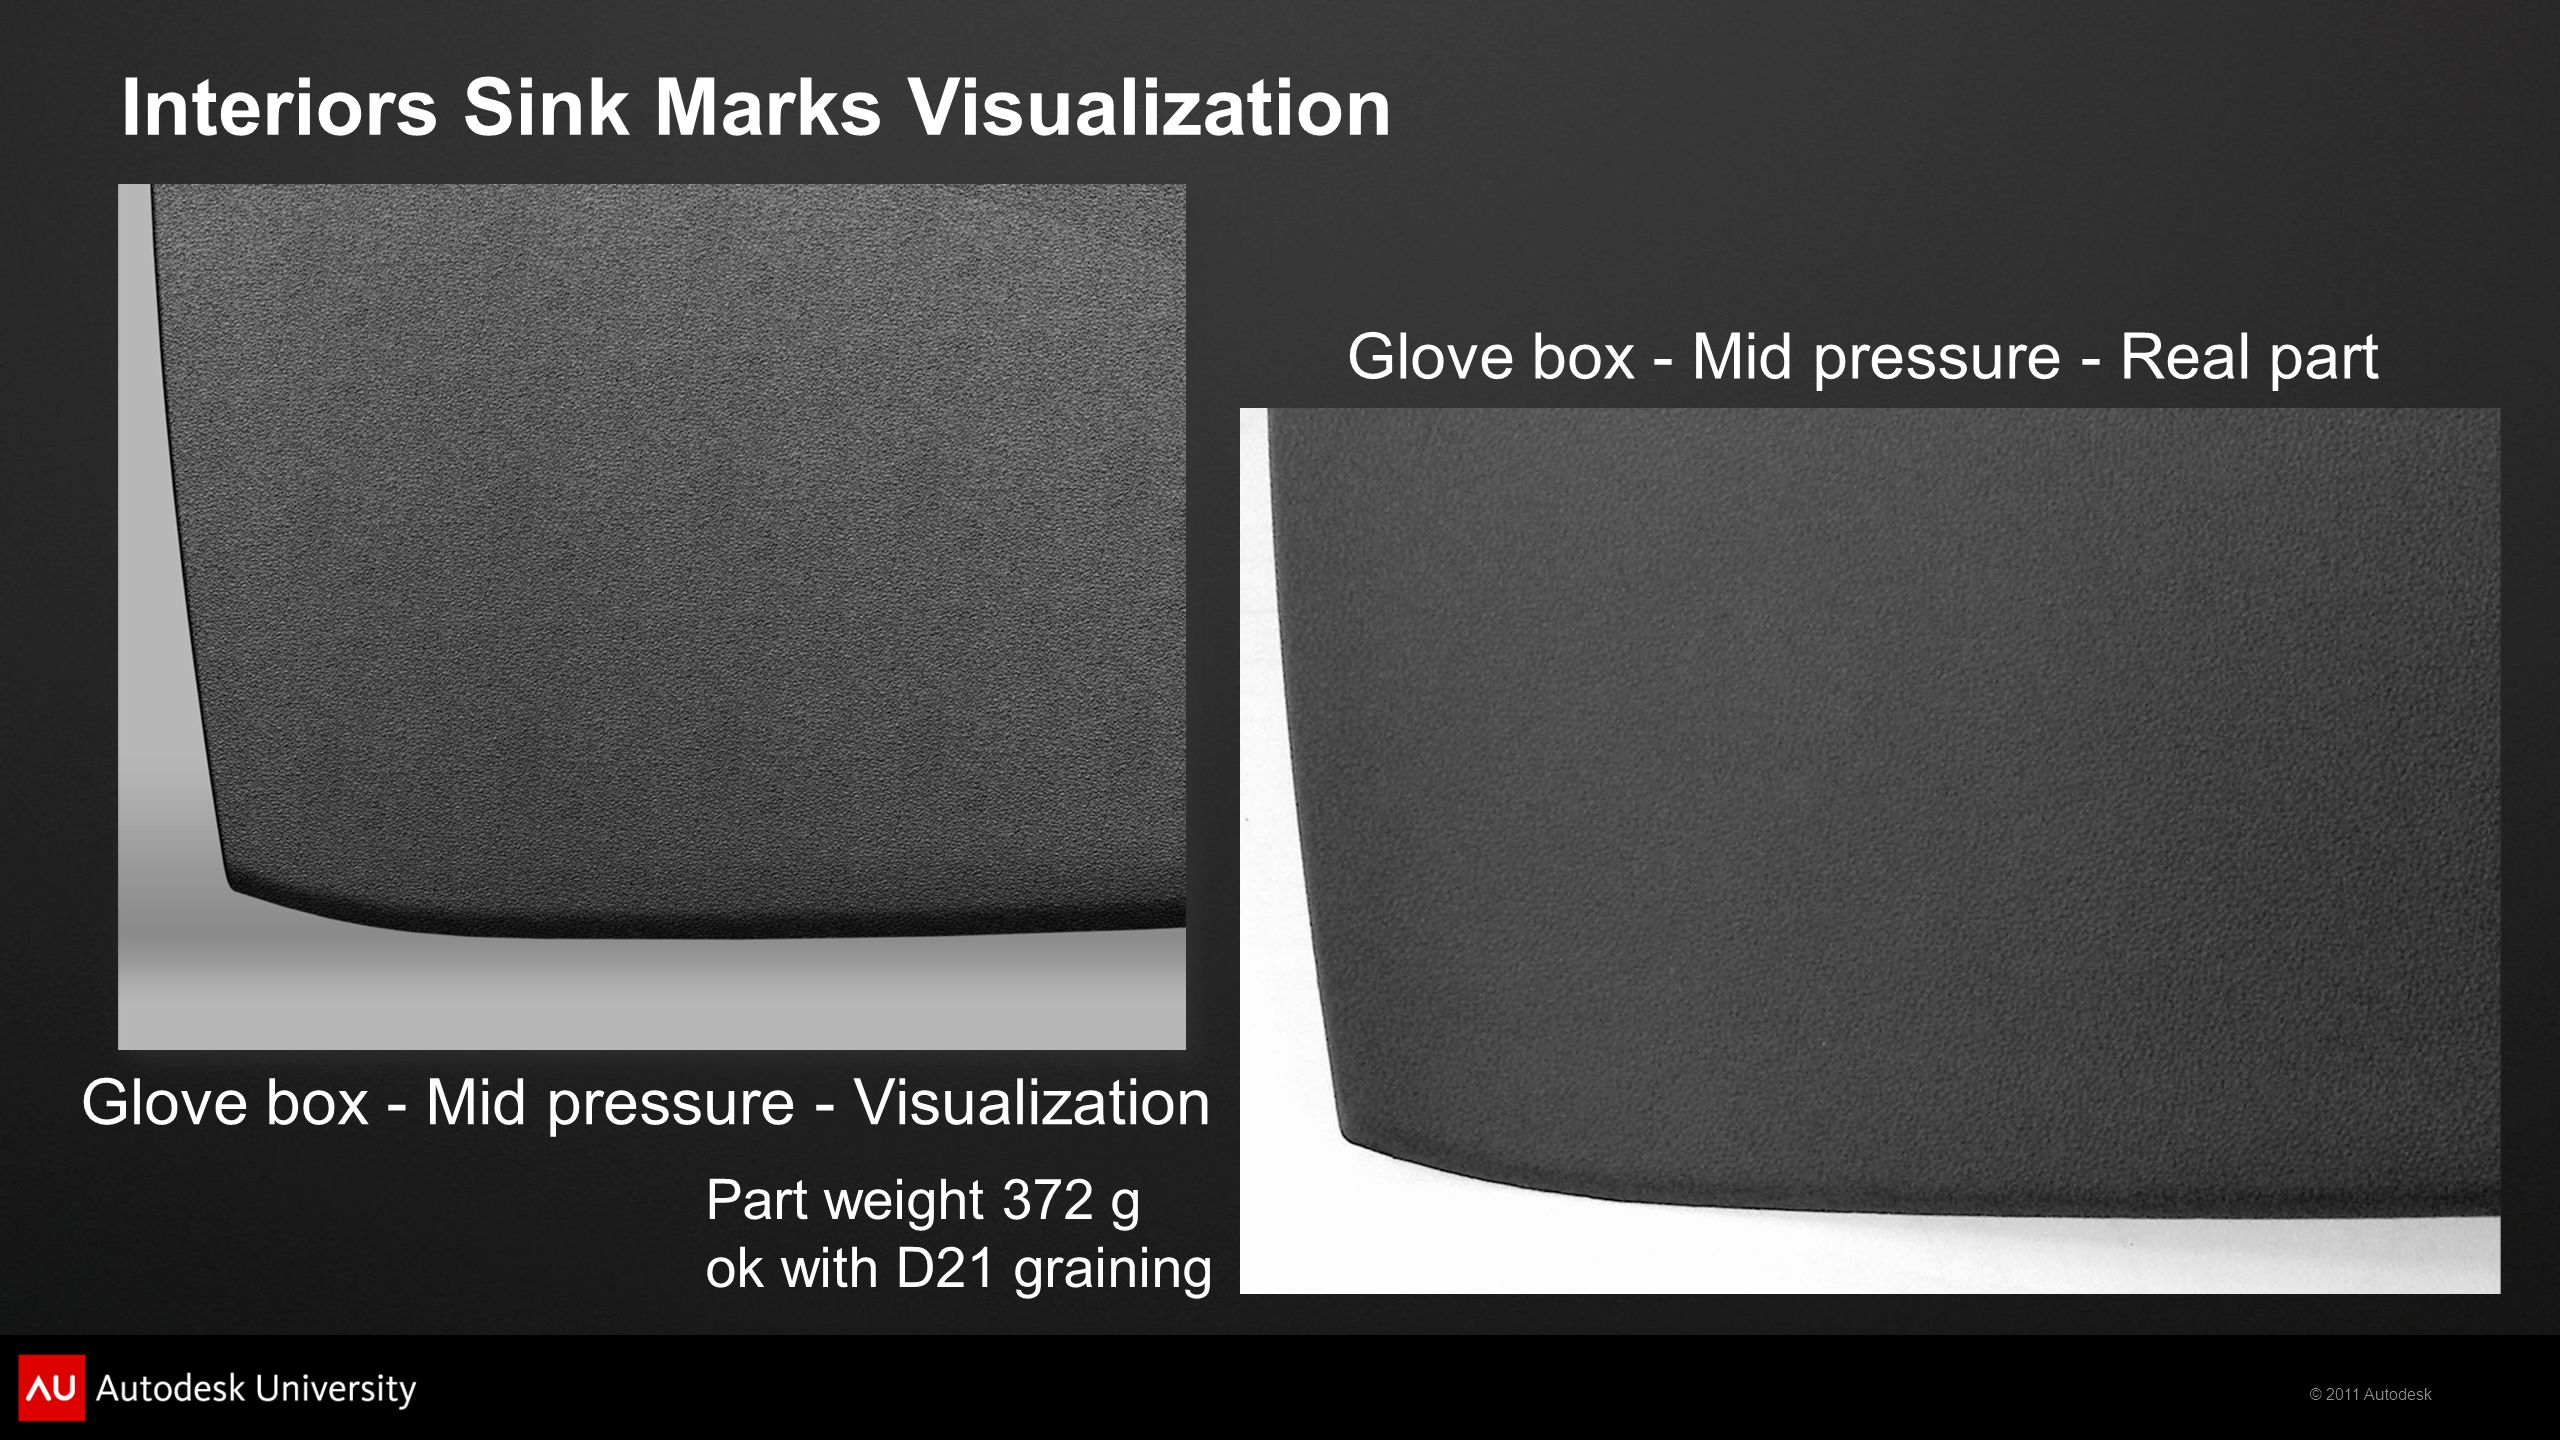 © 2011 Autodesk Glove box - Mid pressure - Visualization Glove box - Mid pressure - Real part Part weight 372 g ok with D21 graining Interiors Sink Marks Visualization